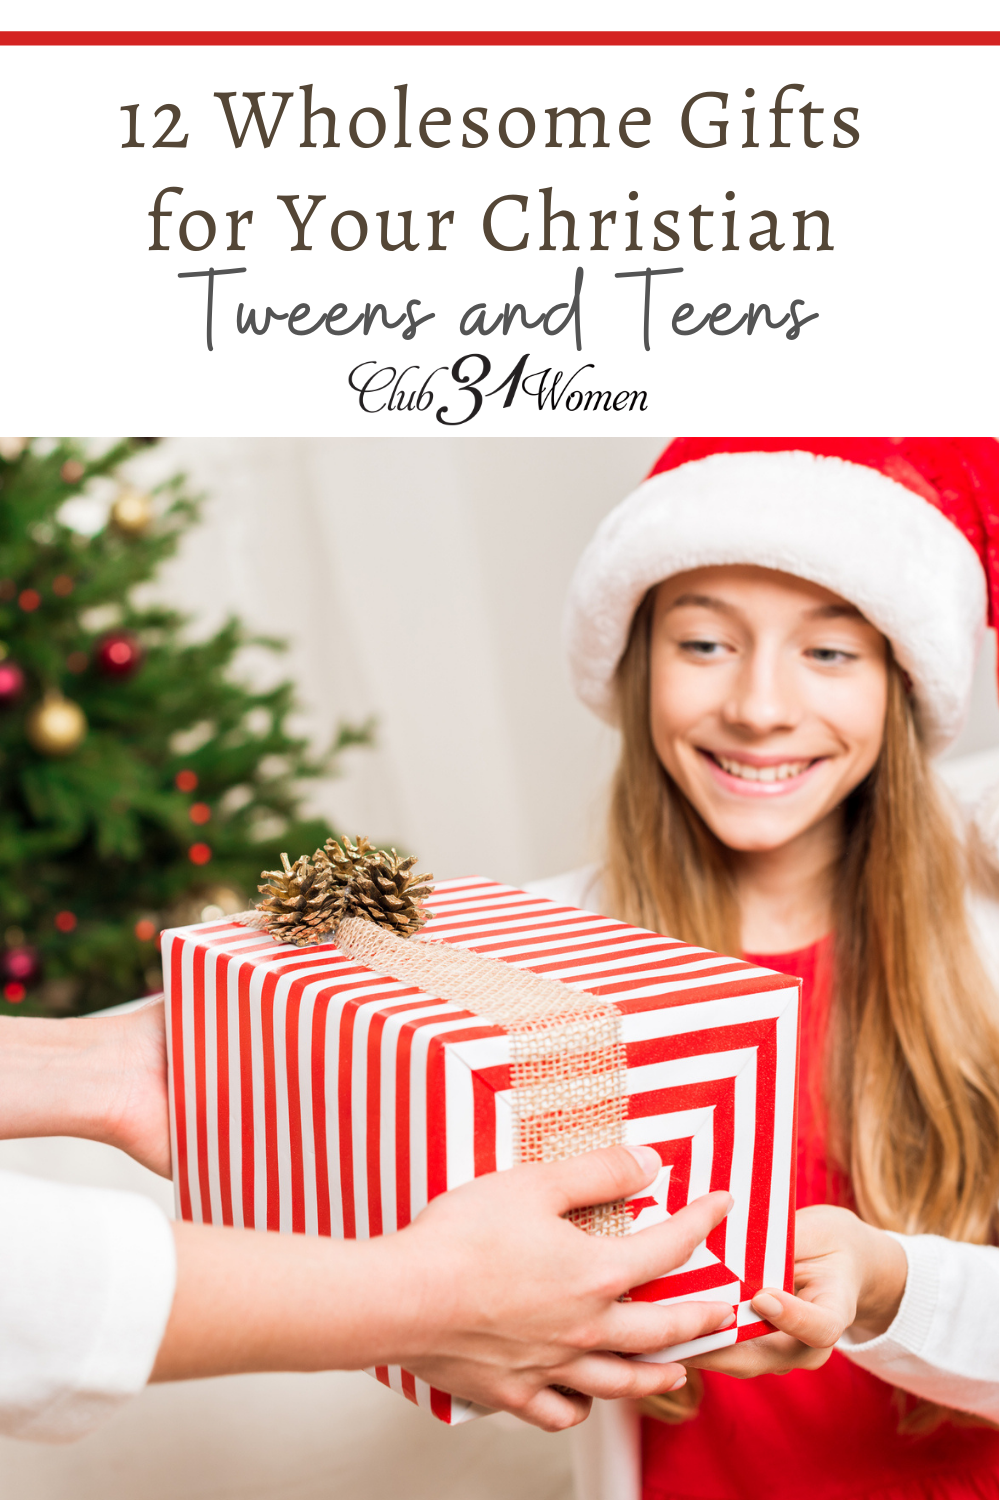 Finding wholesome gift options for tweens and teens is no easy feat! That's why I'm so happy to share this list of great ideas for older Christian kids! via @Club31Women